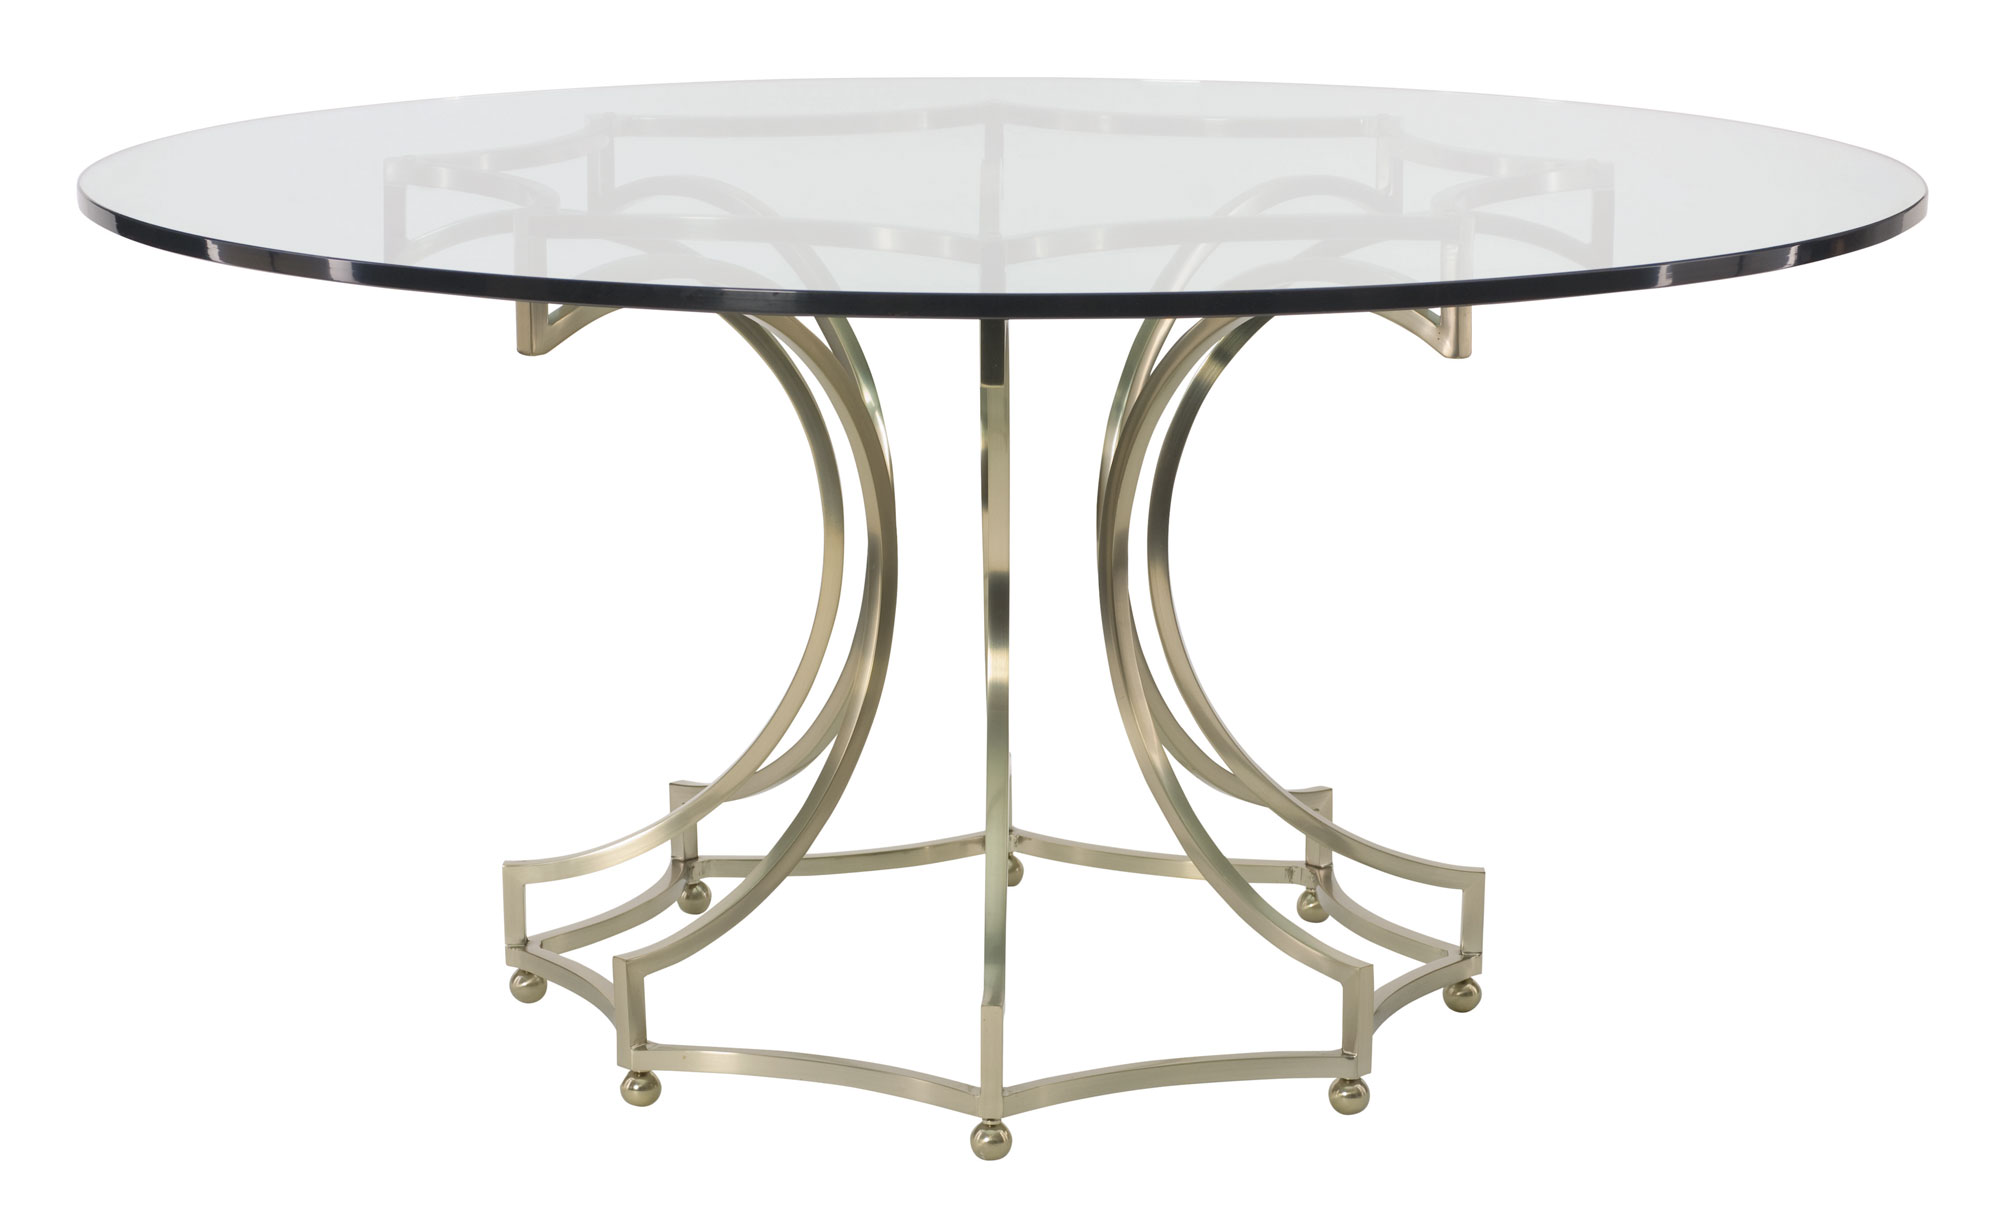 round dining table glass top with metal base glass round kitchen table Miramont Round Dining Table Glass Top with Metal Base